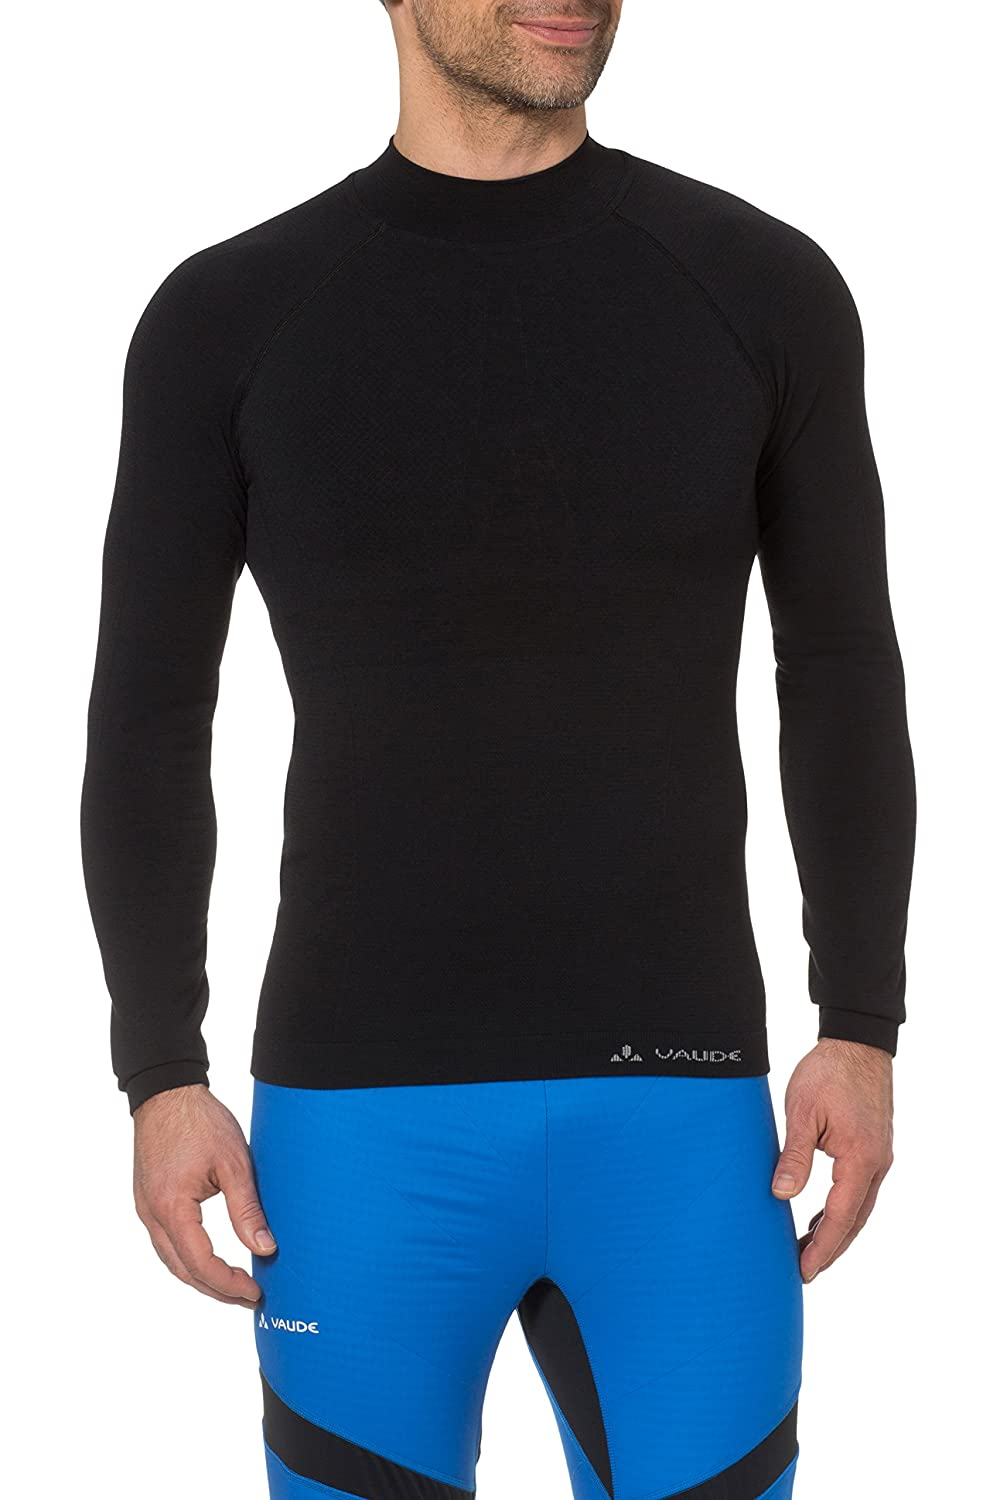 VAUDE Herren T Shirt Seamless Long Sleeve